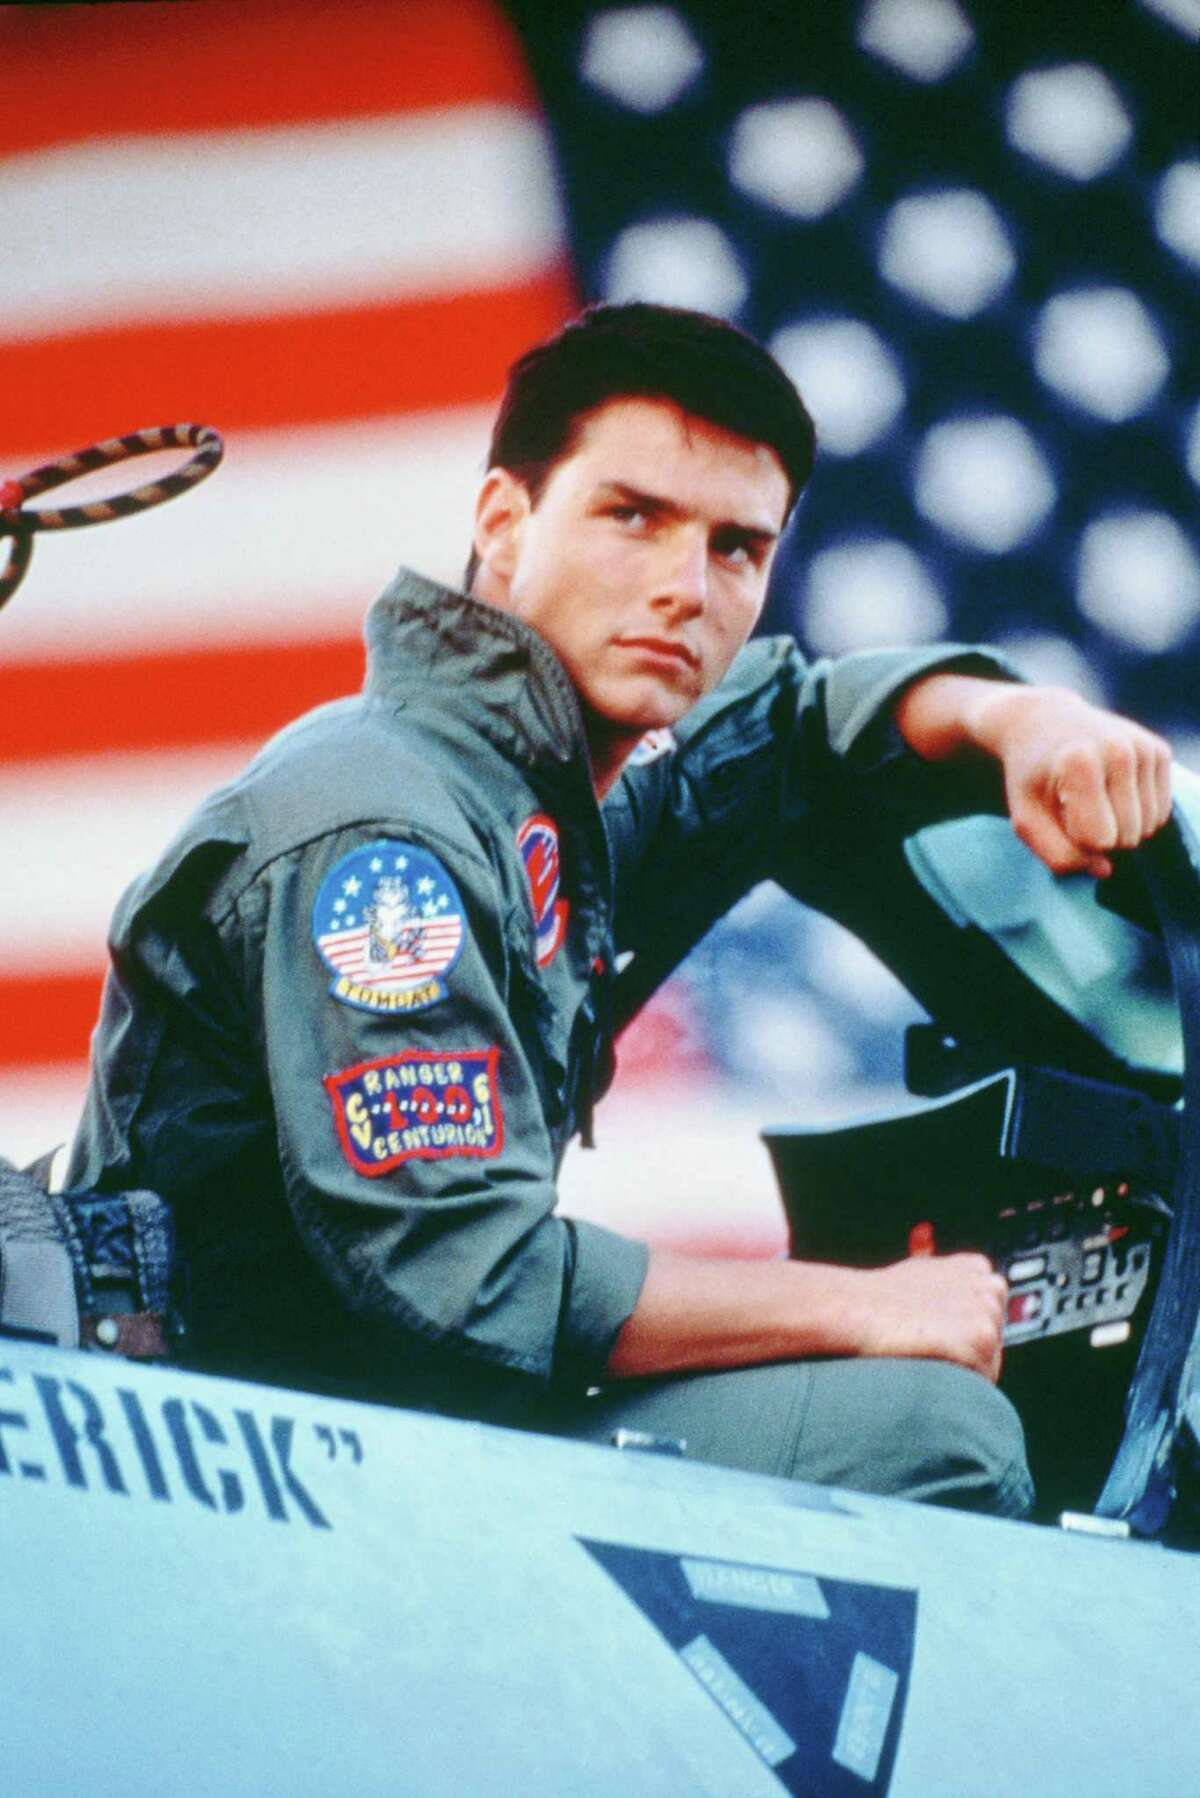 Top Gun Day was initially intended by its founders to fall on May 16, the anniversary of the 1986 film's premiere date. However, so many promotional graphics were produced erroneously advertising the film holiday as being on the 13th that it was kept on that date to prevent confusion.The day is intended to be celebrated by adorning one's social media pages with everything Top Gun and quoting the movie all day. Kinda like